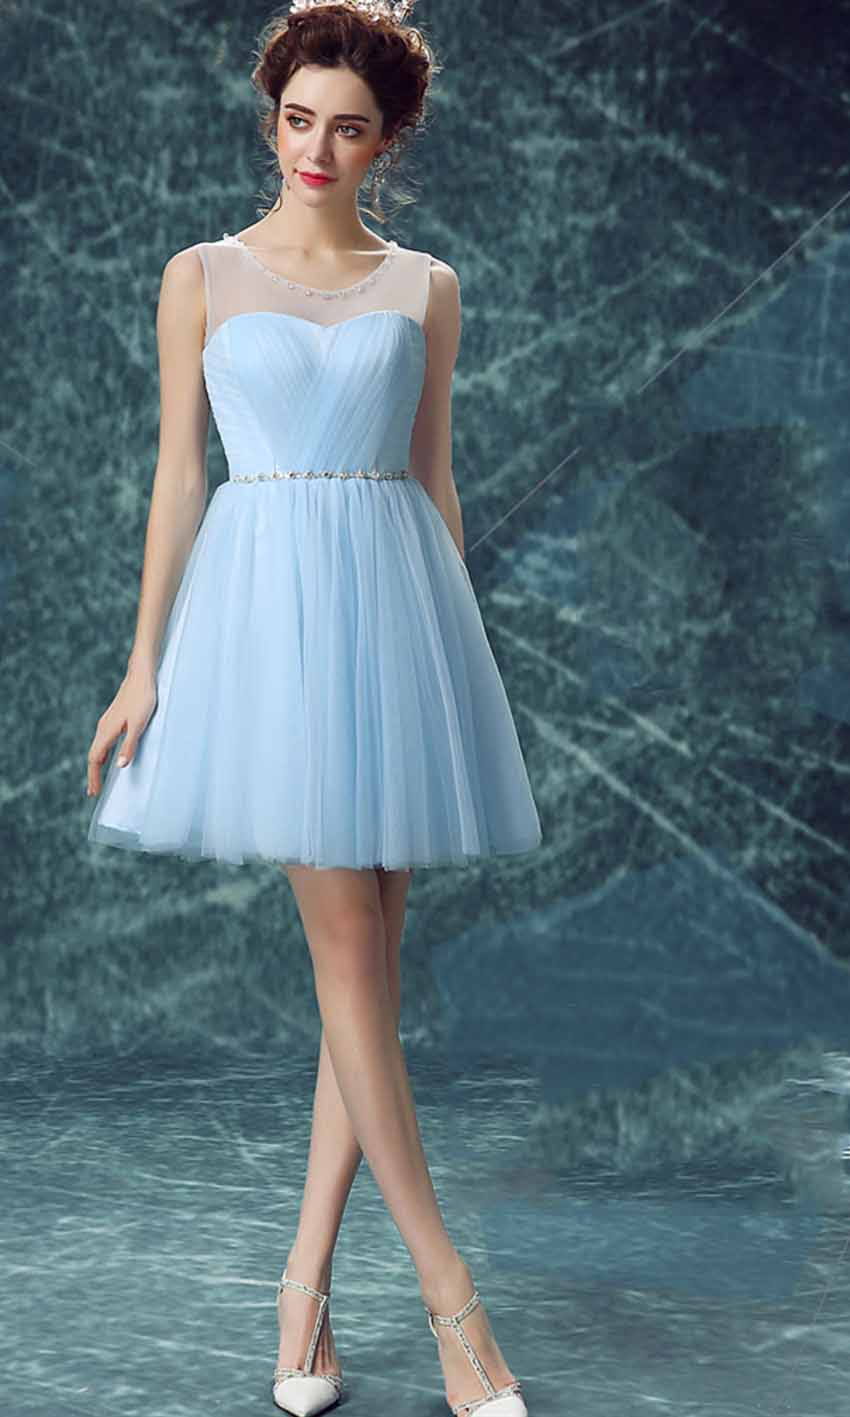 Cute Blue Illusion Prom Dress Short Keyhole Back KSP463 [KSP463] - £88.05 : Cheap Prom Dress UK, Wedding Bridesmaid Dresses, Prom 2016 Dresses, Kissprom.co.uk offers fashion trends prom dresses uk, bridesmaid dresses uk, amazing graduation dresses, ball gown and any other formal, semi formal dresses with free shipping and free custom service at affordable price.